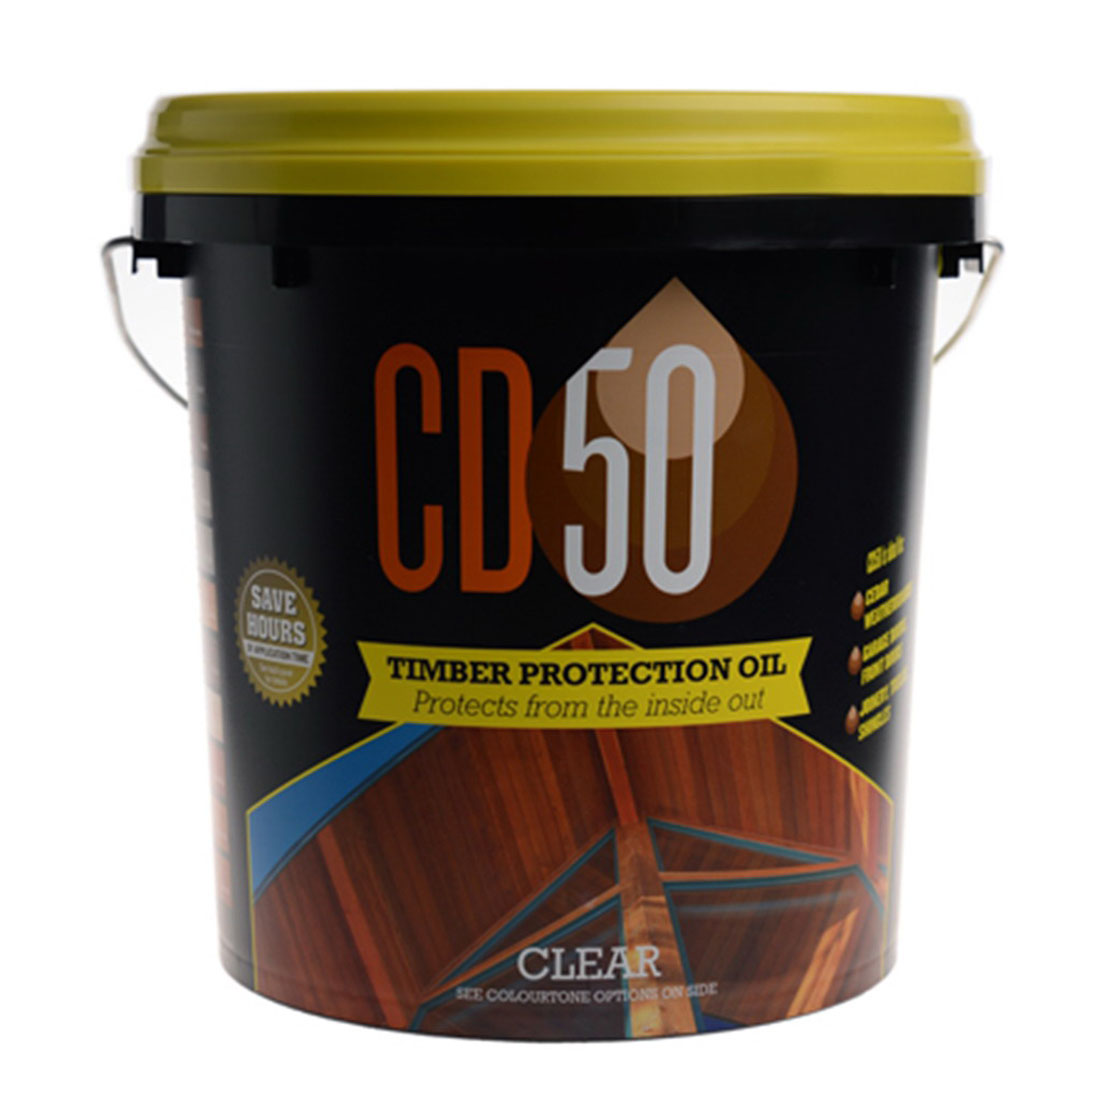 1L Timber Protection Oil Clear